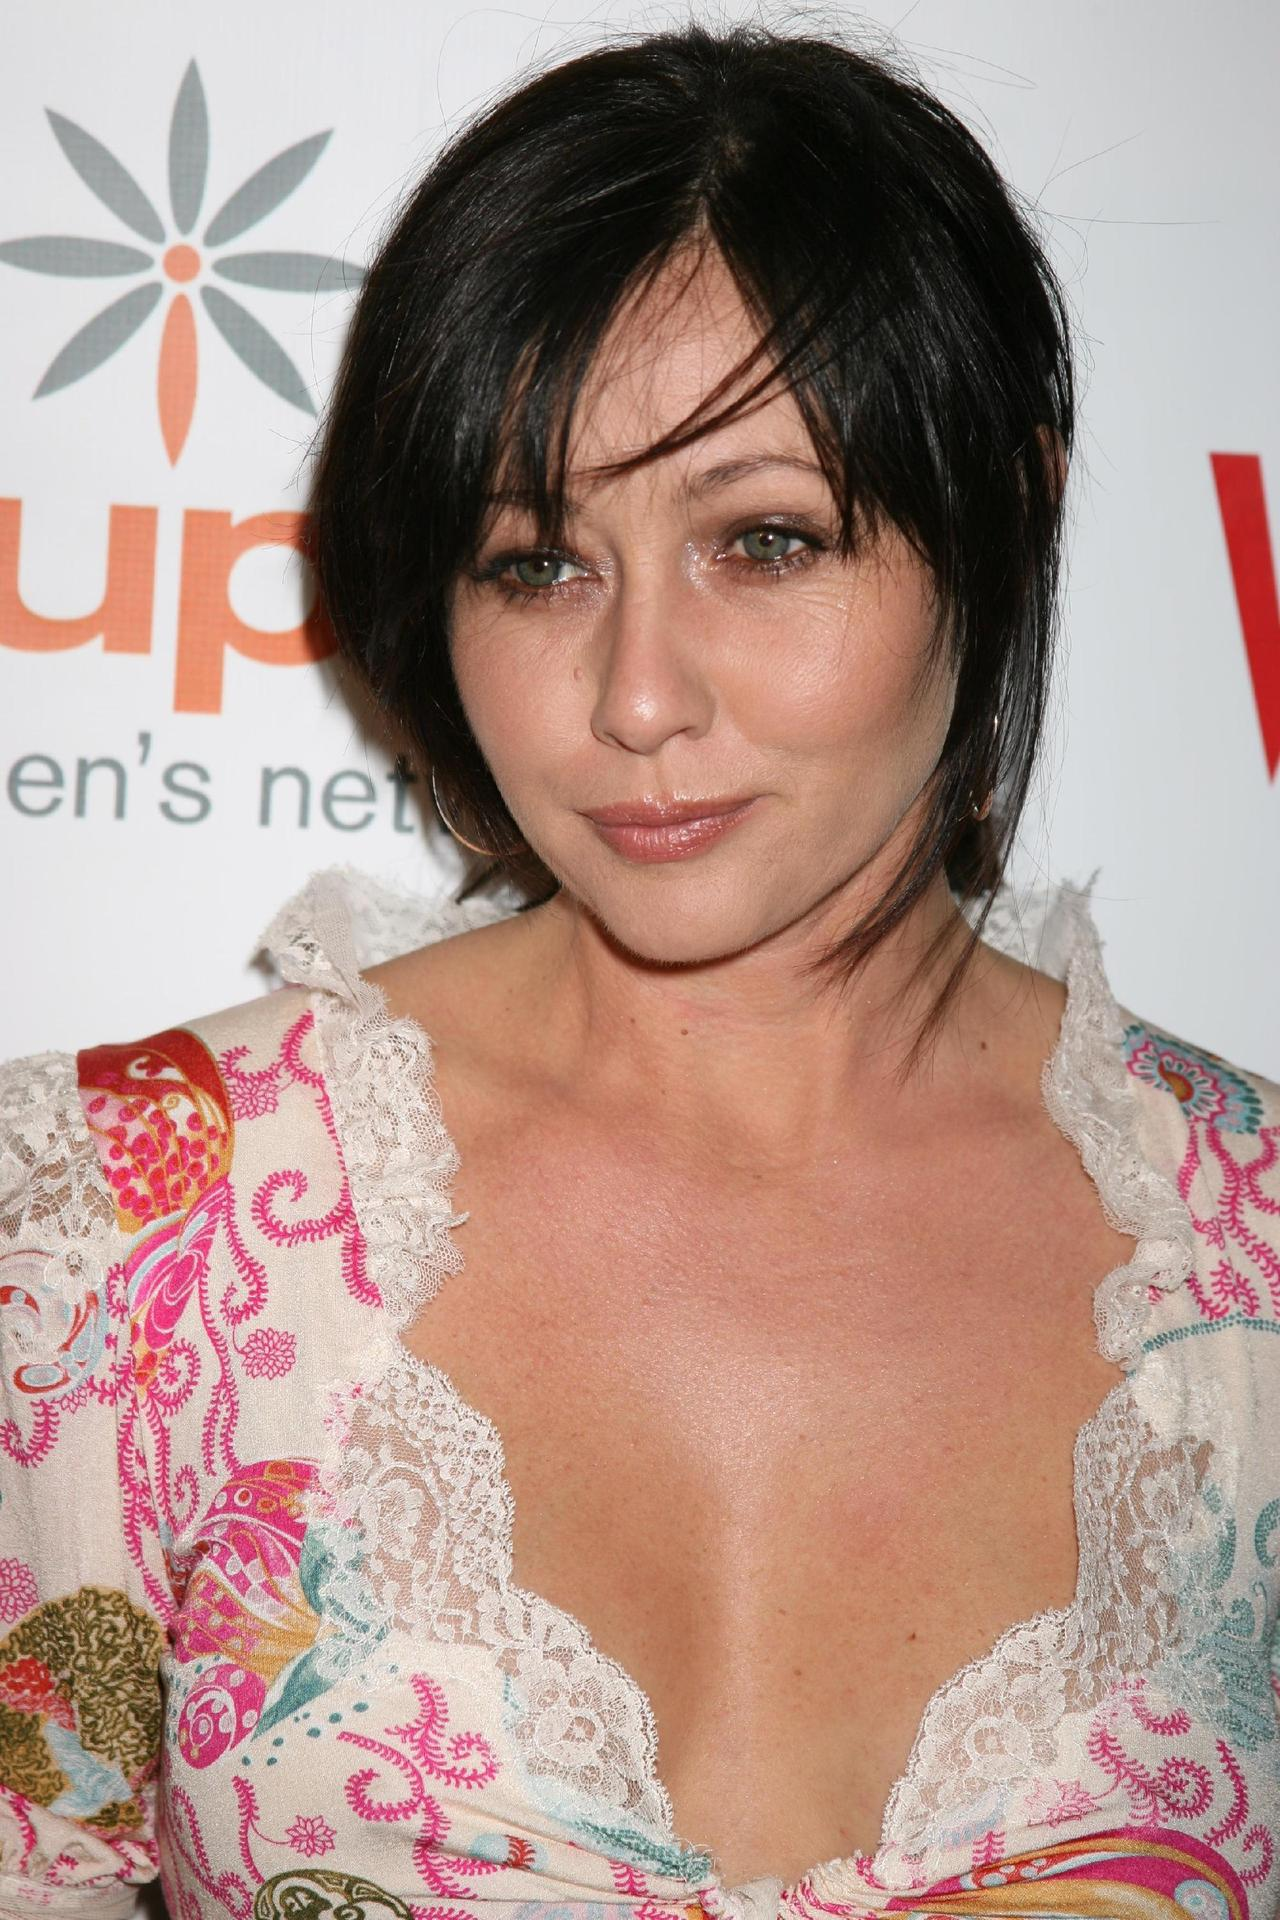 Shannen Doherty - Wallpaper Gallery